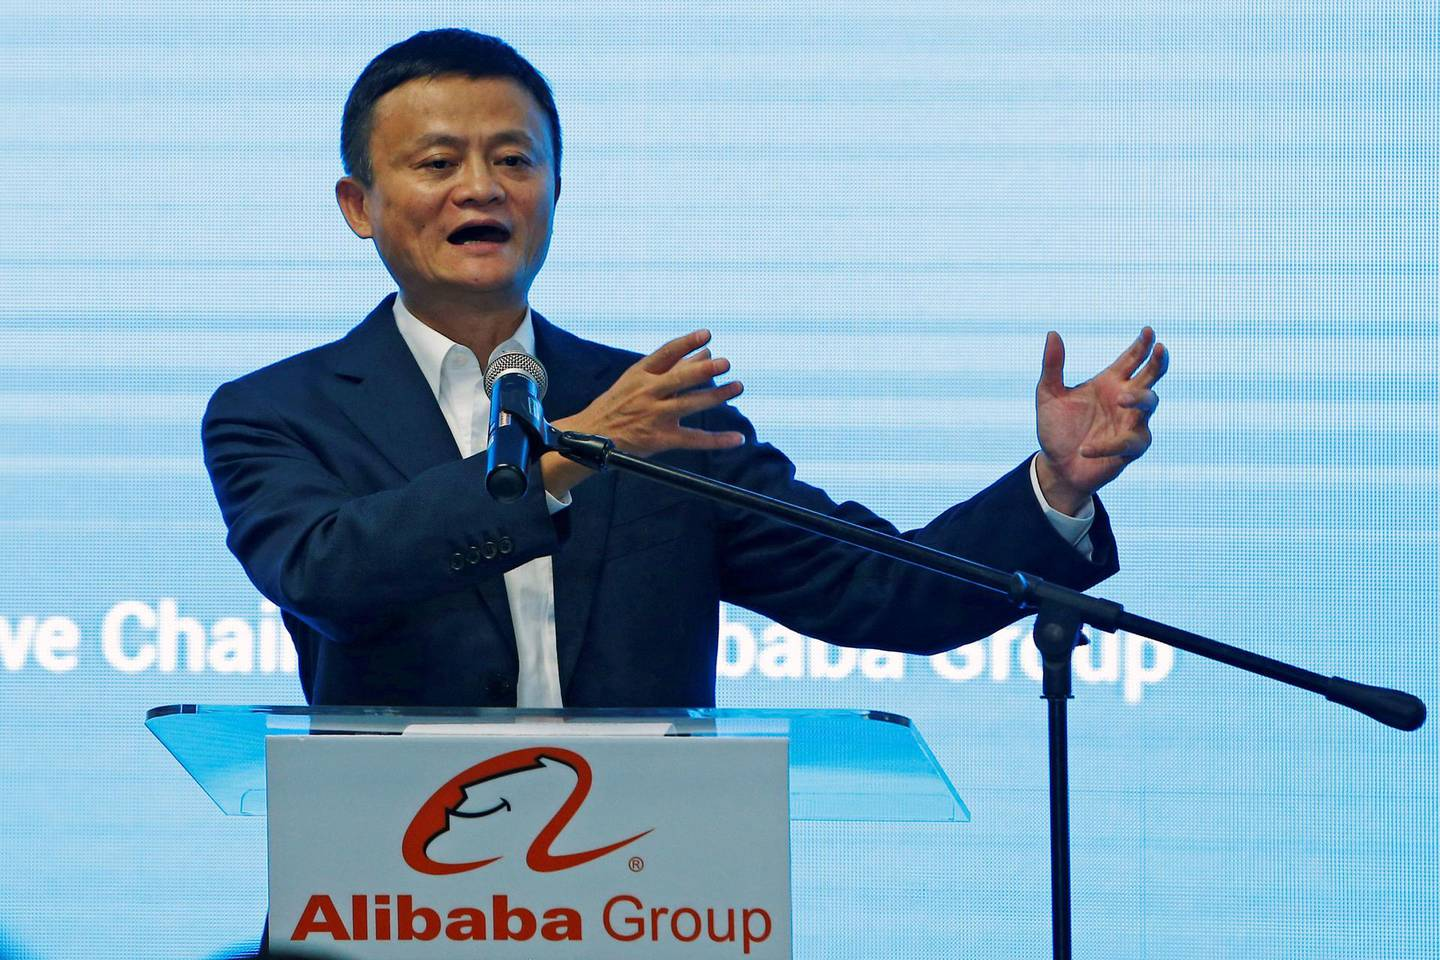 FILE PHOTO: Jack Ma, founder of Chinese e-commerce giant Alibaba, speaks during the launch of Alibaba's office in Kuala Lumpur, Malaysia June 18, 2018. REUTERS/Lai Seng Sin/File Photo